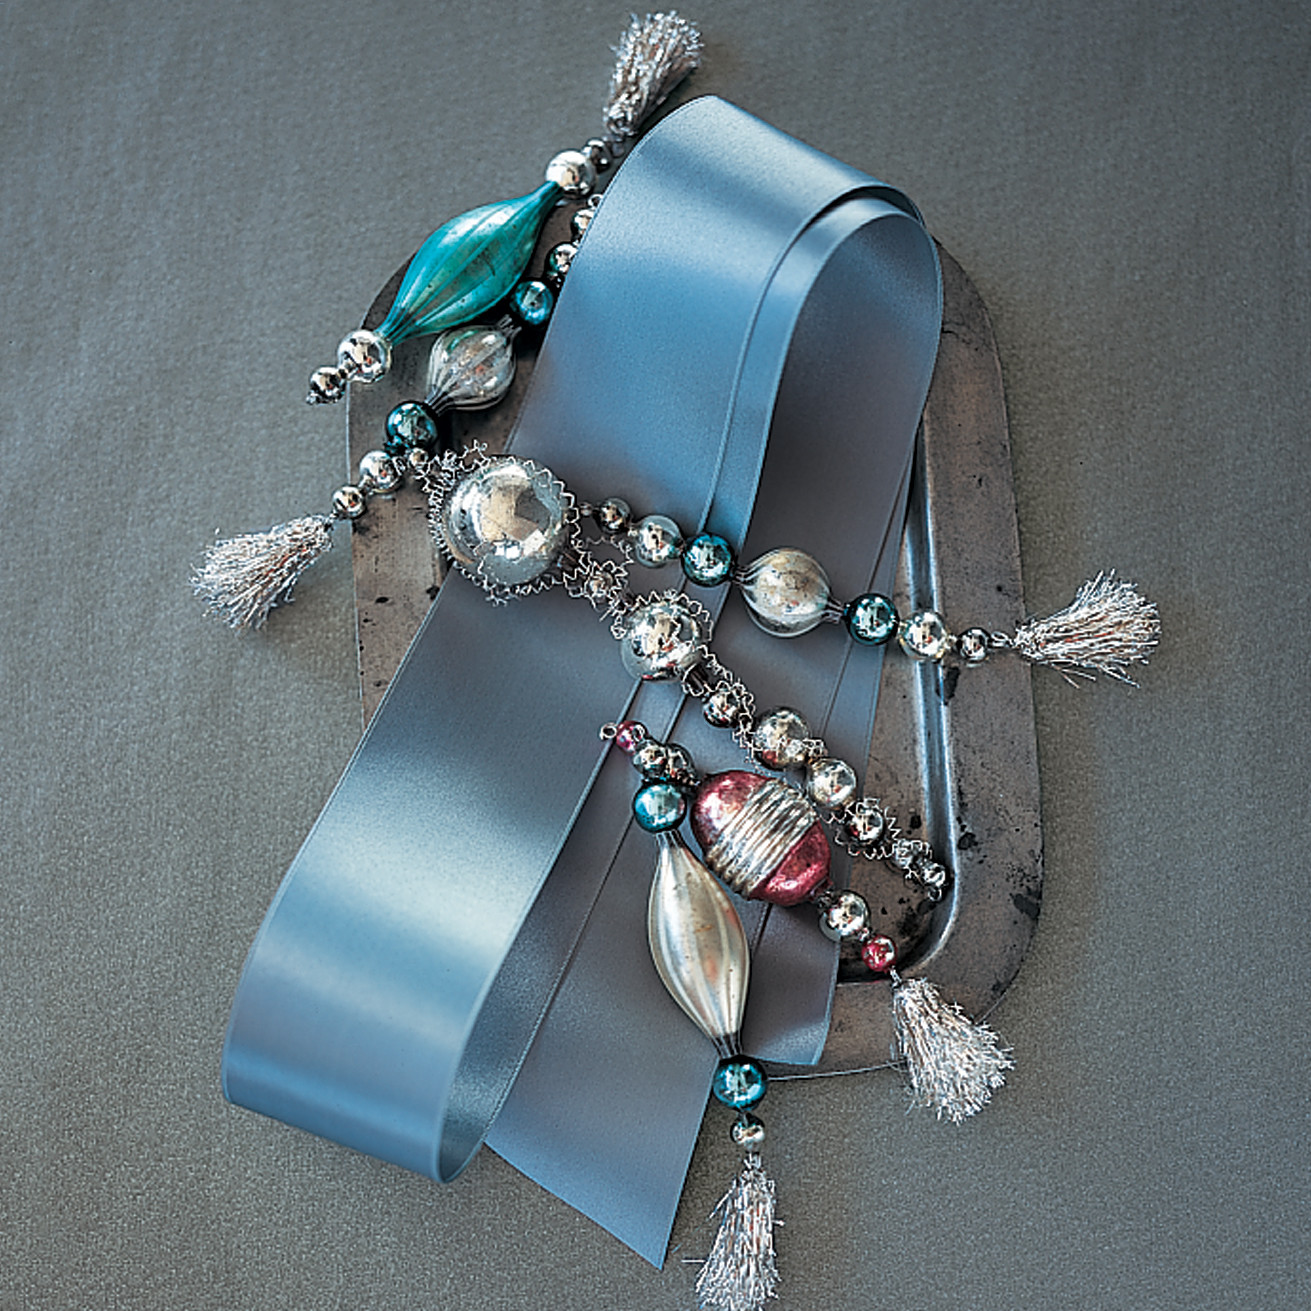 Icicle Ornaments | Martha Stewart